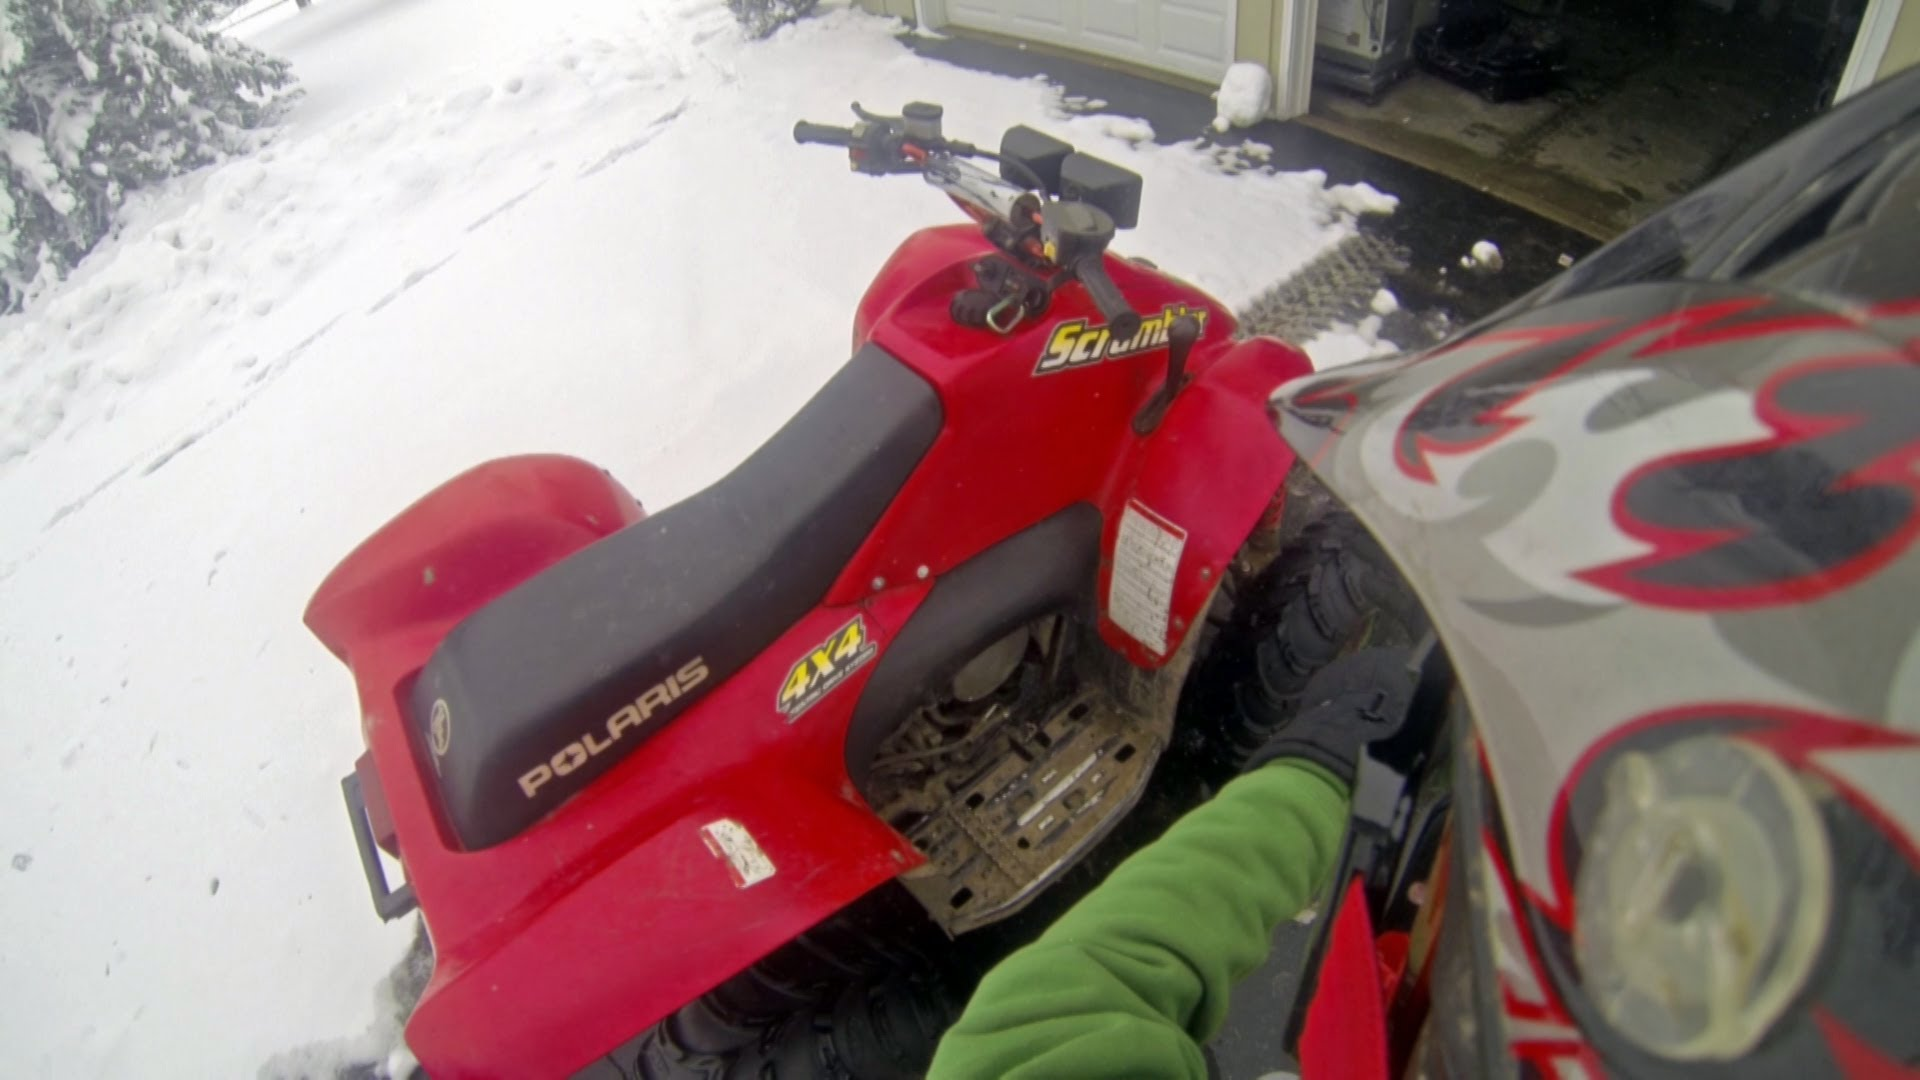 Polaris Scrambler 400 images #158389